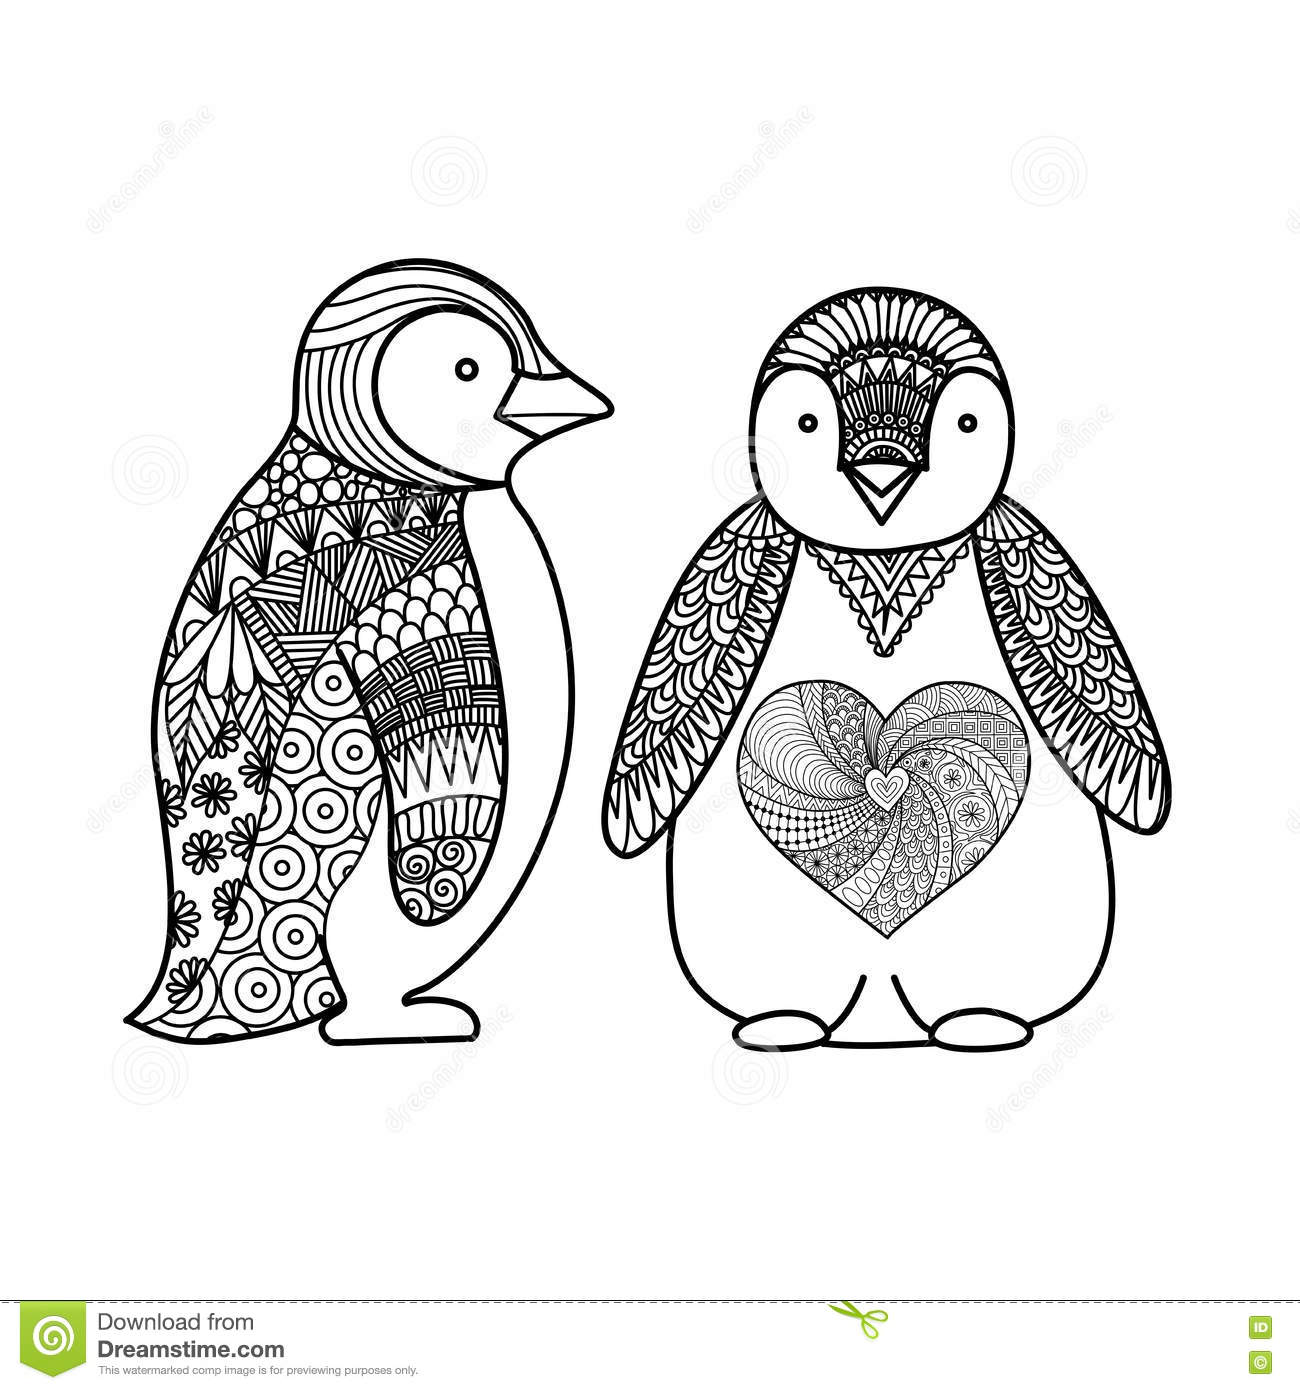 Two Penguins Doodle Design For Coloring Book For Adult T